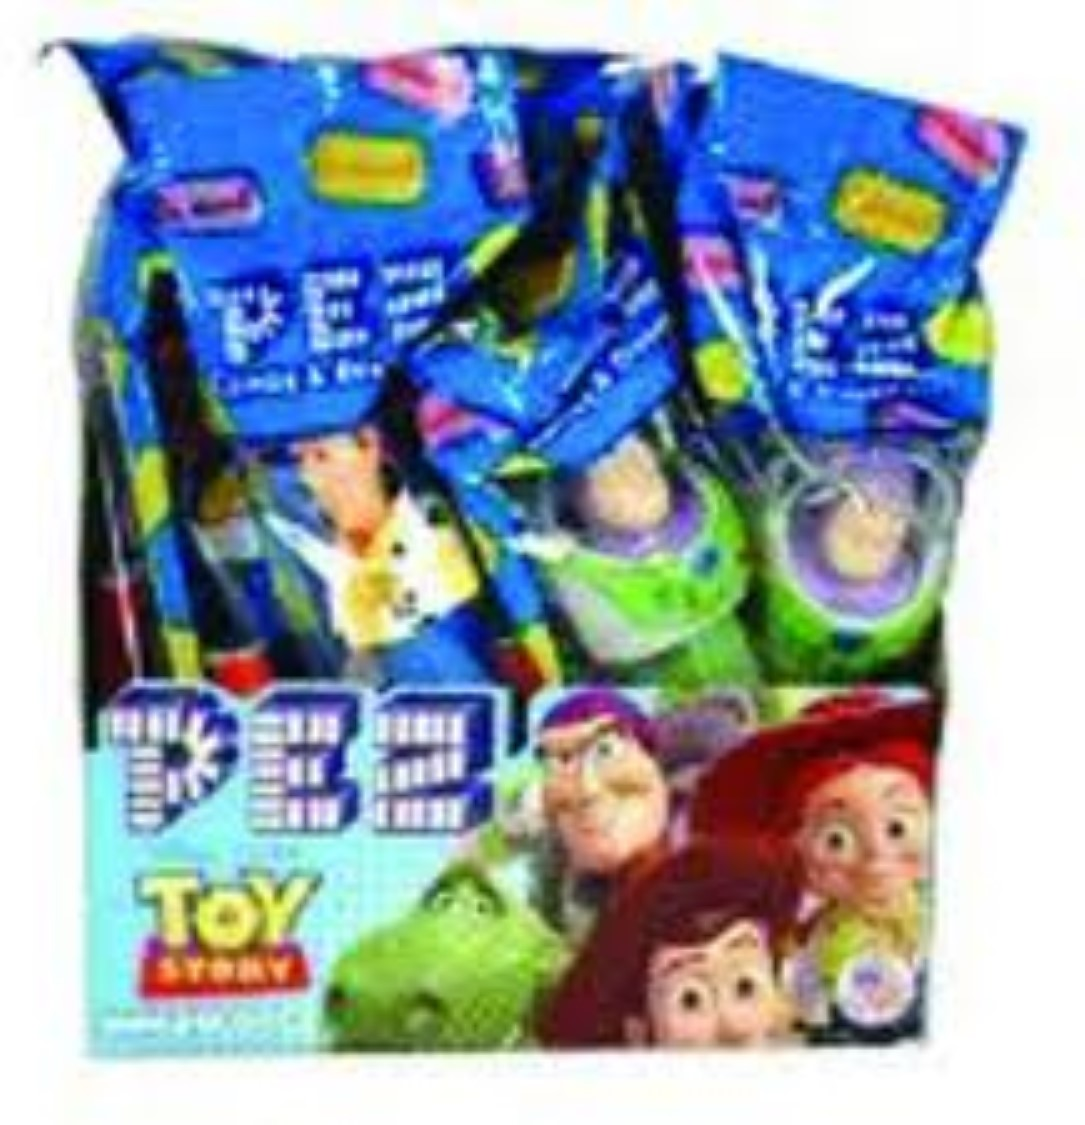 6 Pack - PEZ Toy Story Assorted, 12 ea